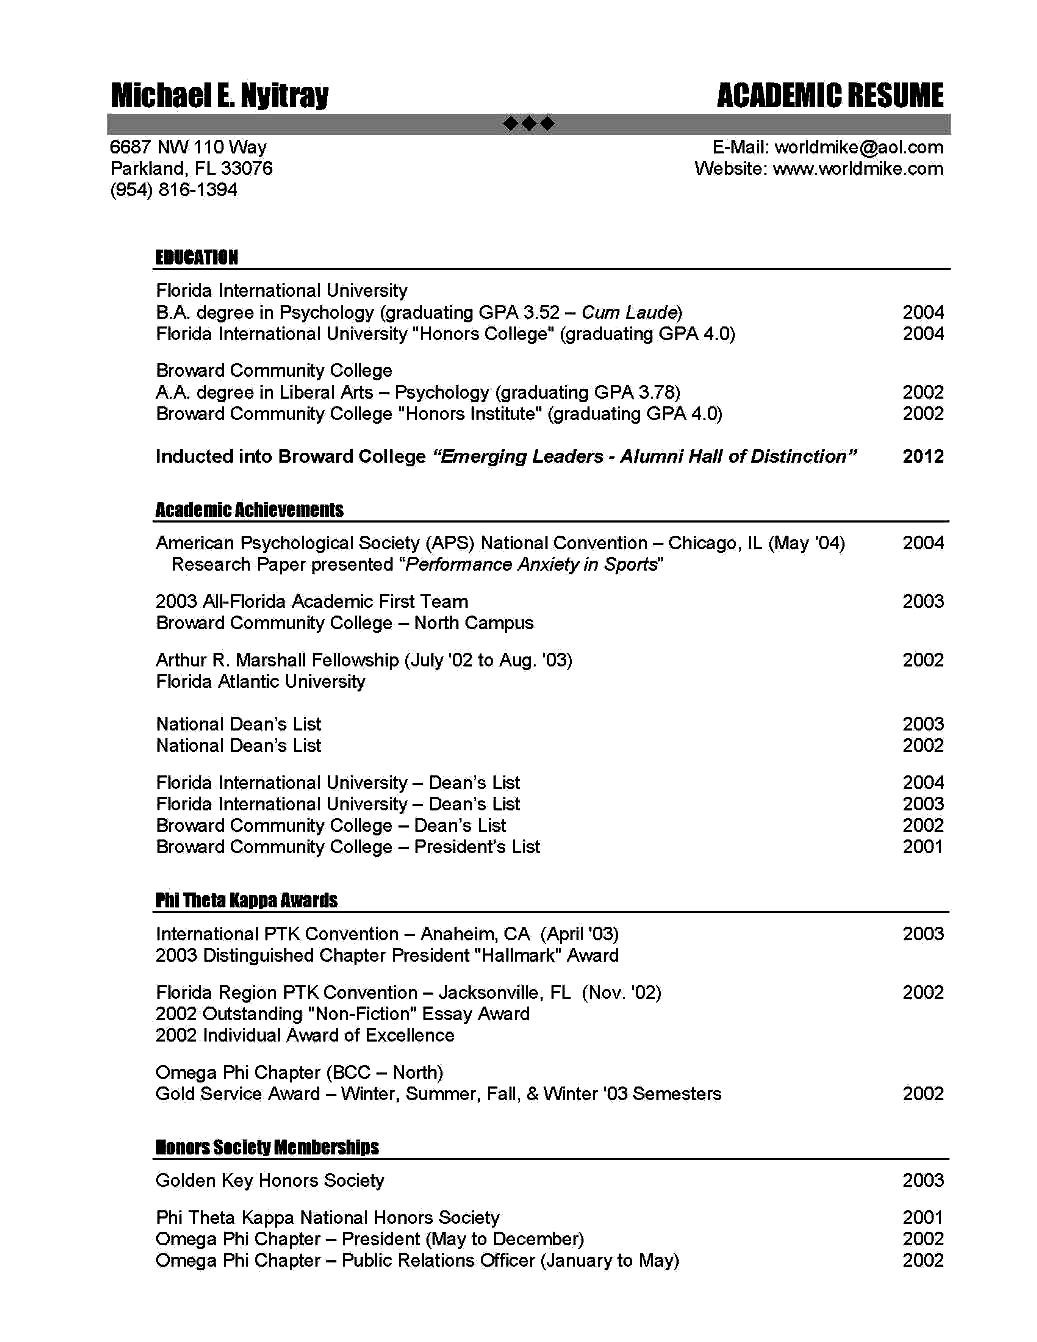 resume for academic position